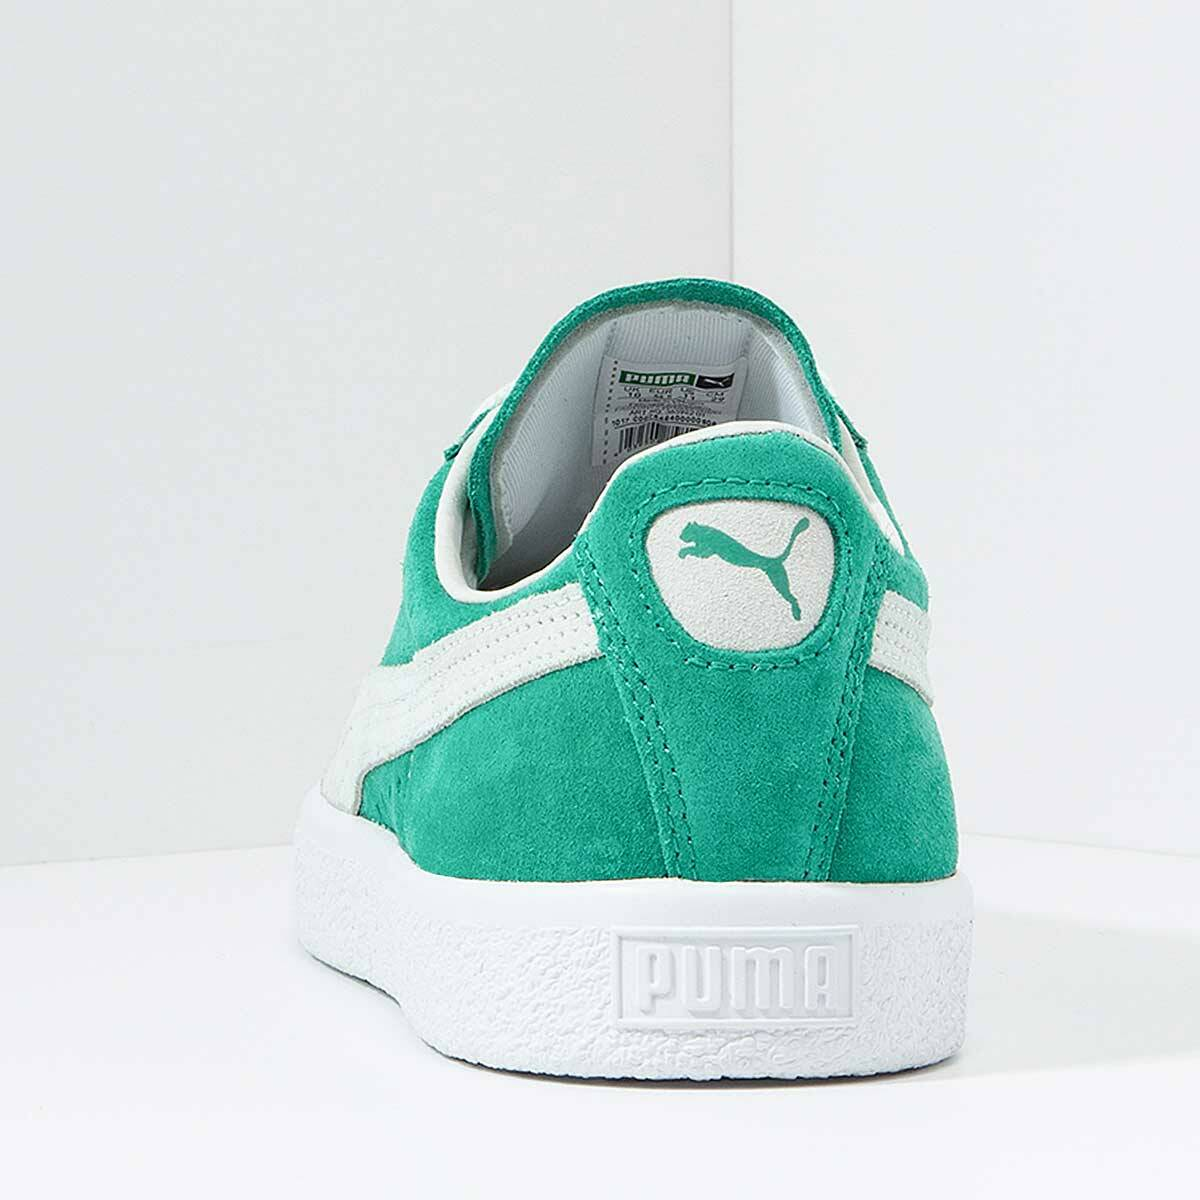 super popular 2481e 6c455 Puma suede 90681 in grün - 365942 01 | everysize